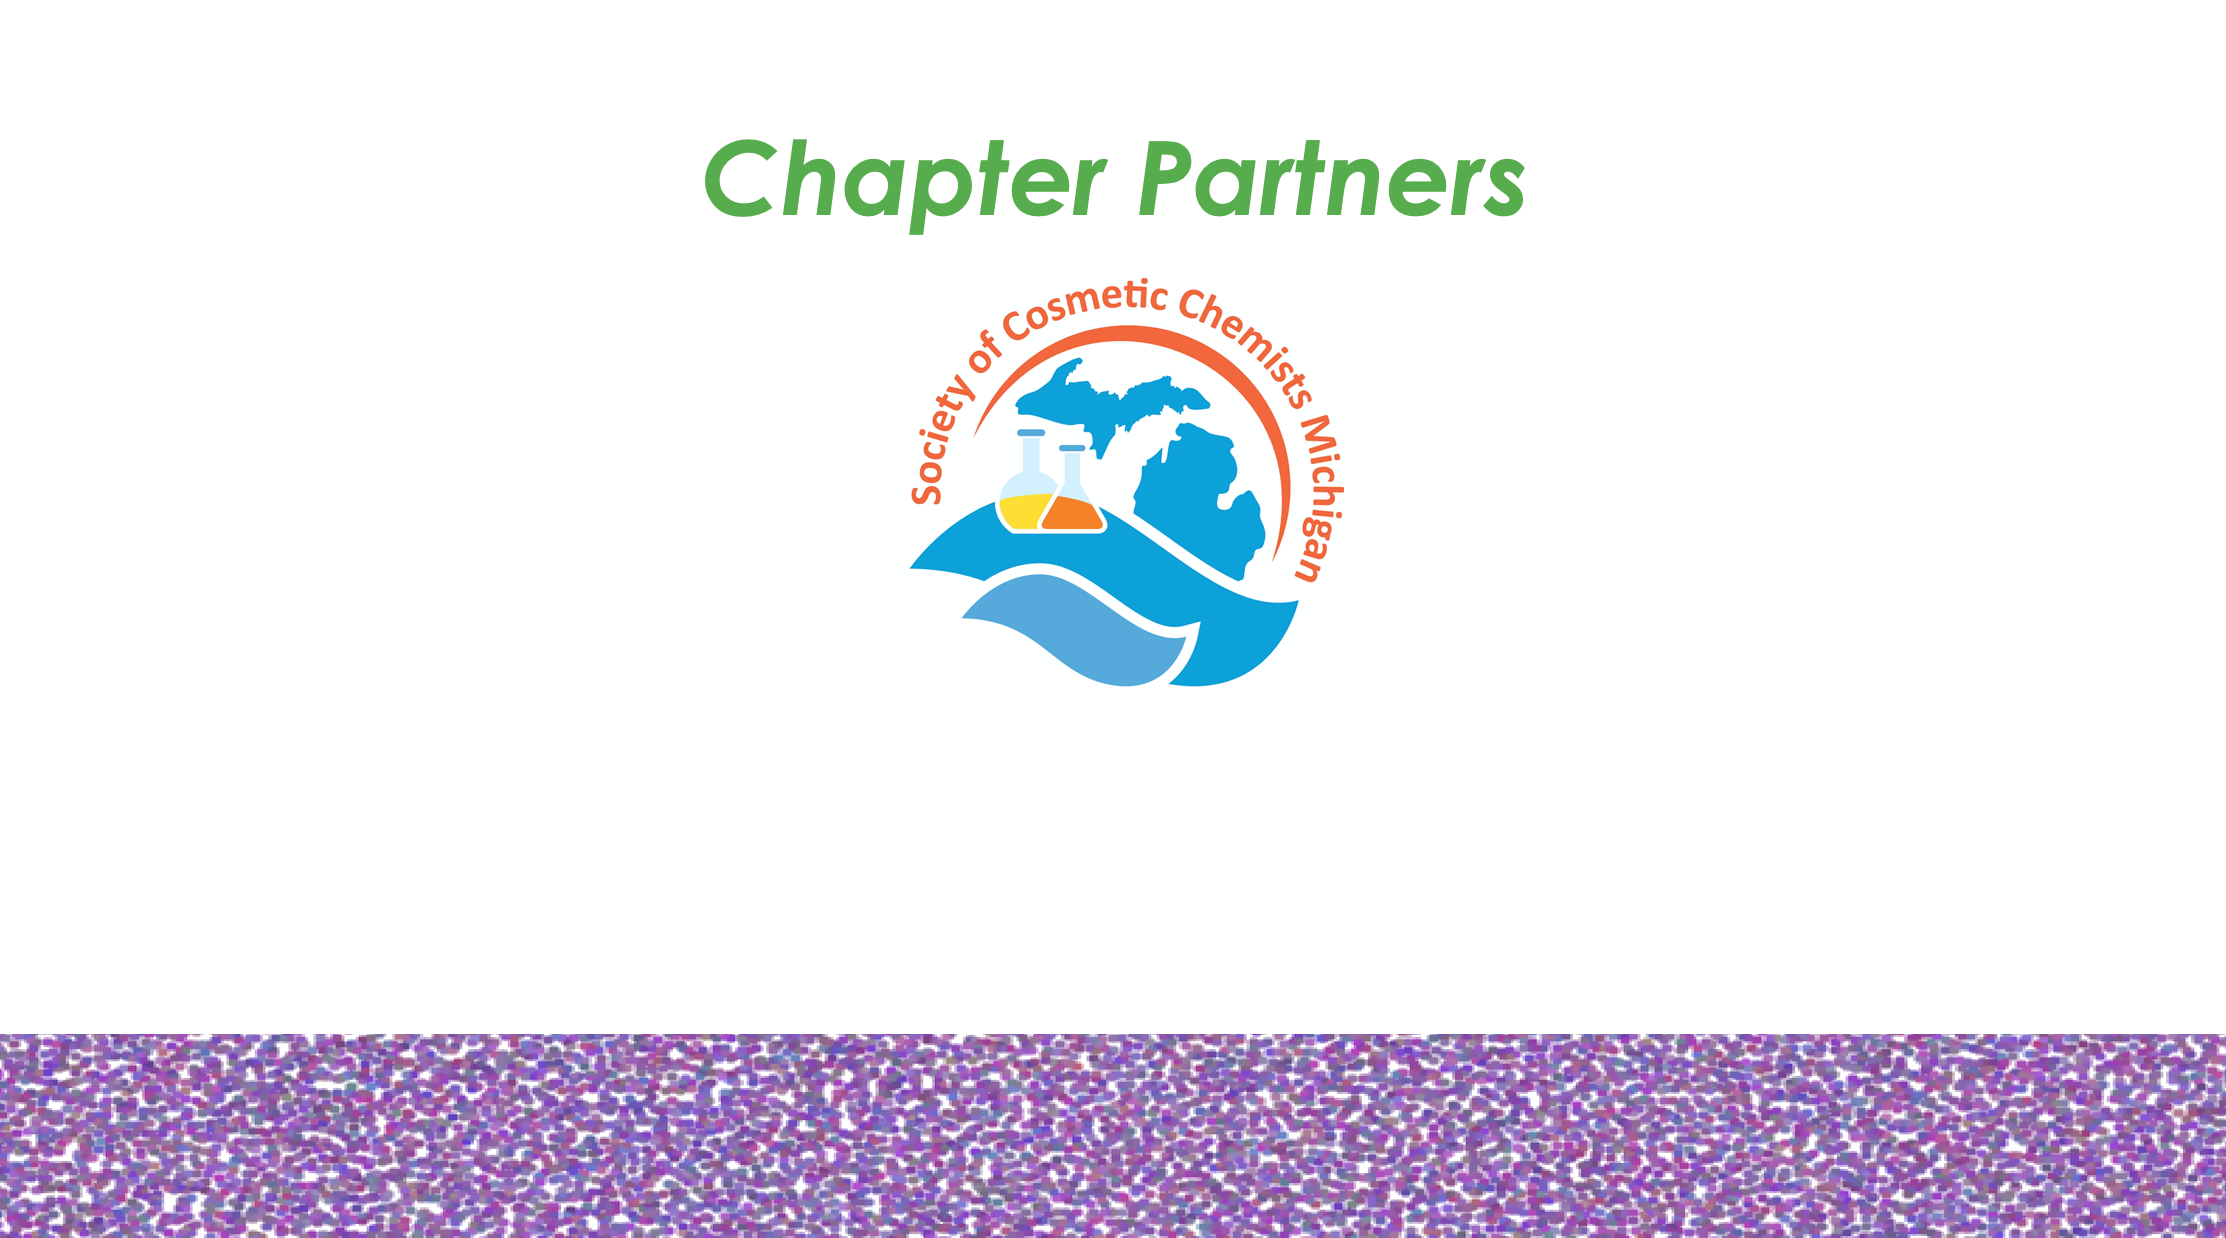 Chapter Partners